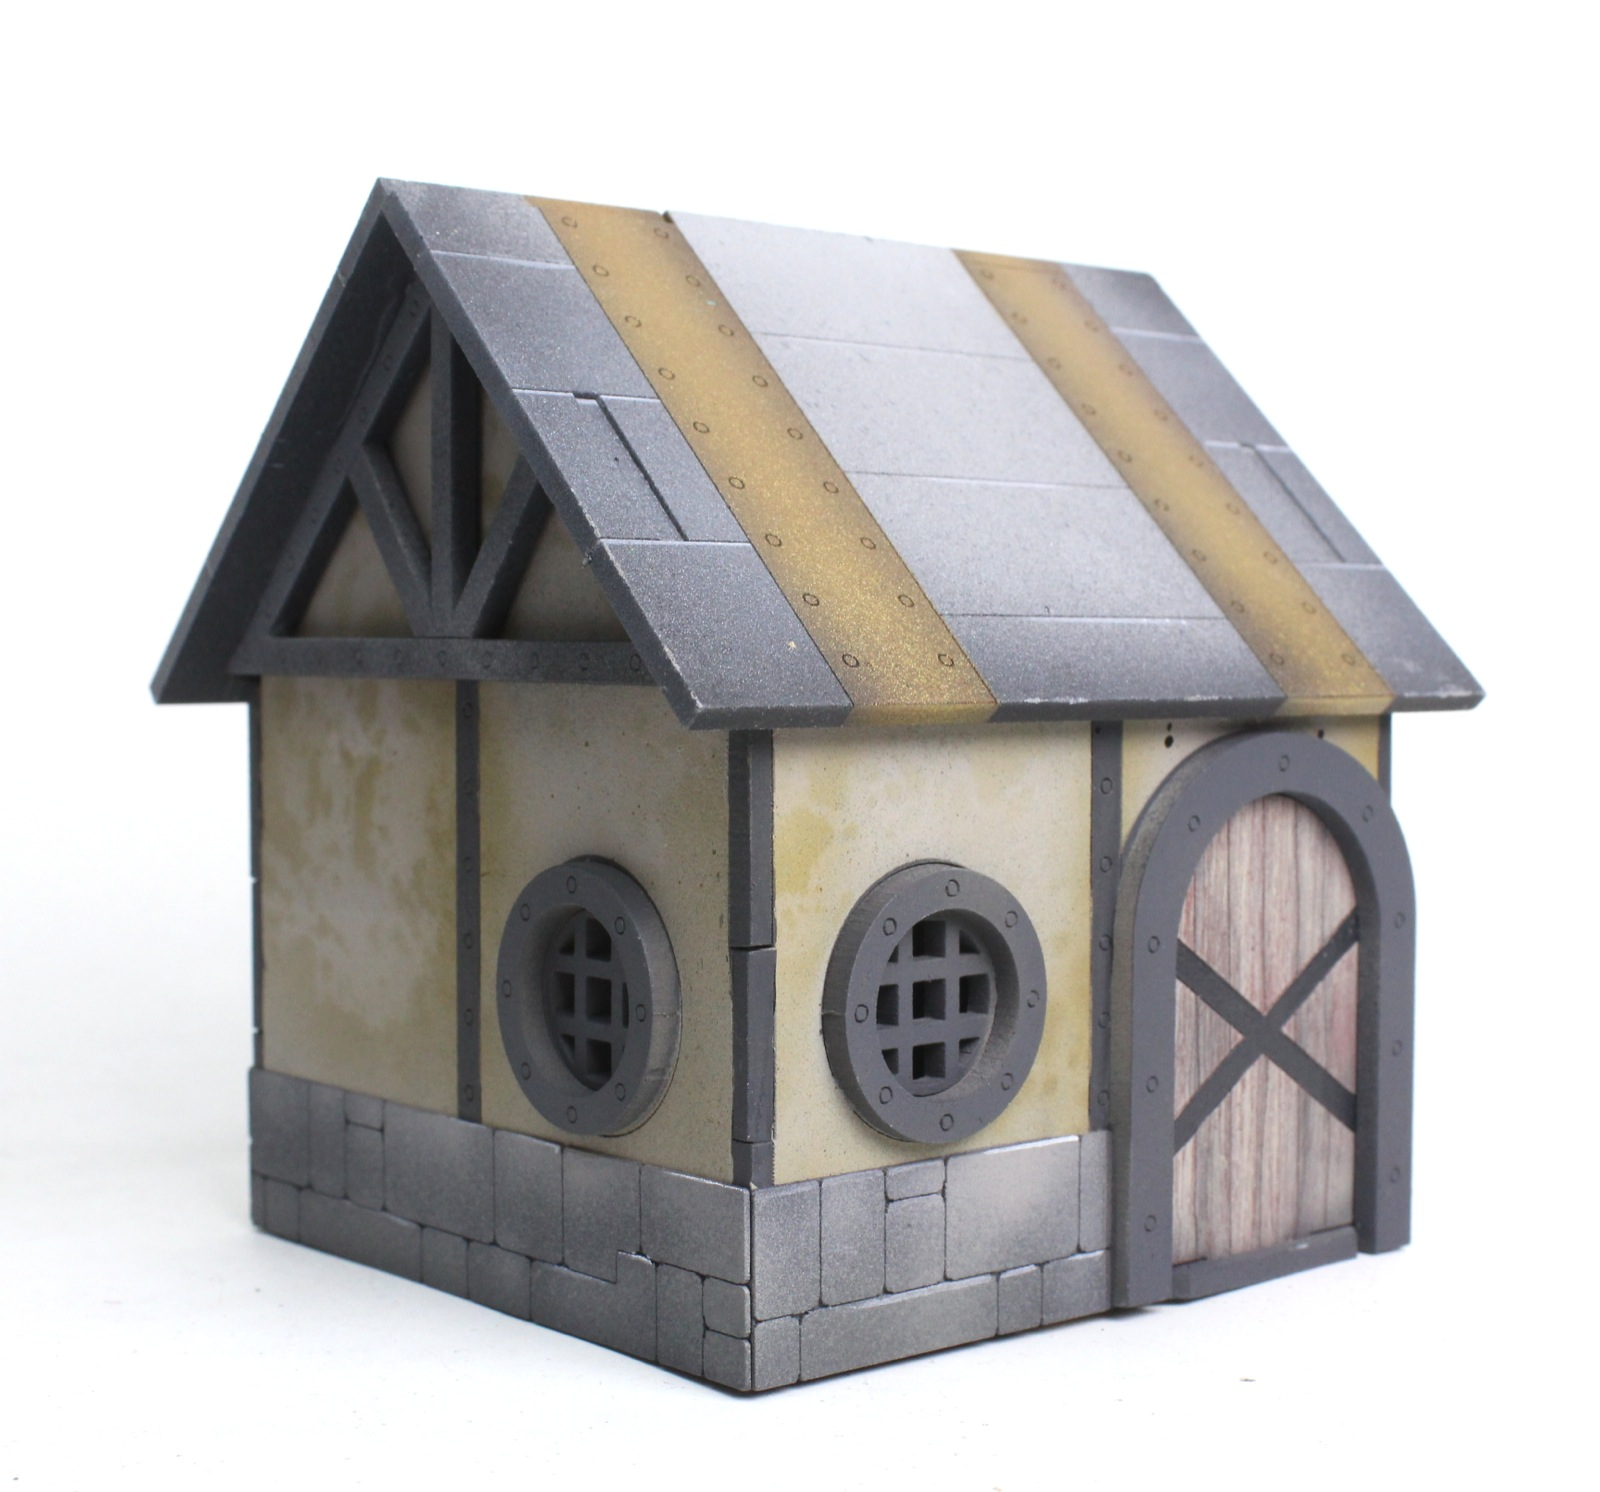 New Gallows Guest Quarters w/ Outhouse – Ray Designs ... on outhouse prints, outhouse posters, outhouse ornaments, outhouse signs, outhouse theme decor, outhouse kits, outhouse decorations, outhouse fabric, outhouse silhouette, outhouse foam, outhouse stamps,